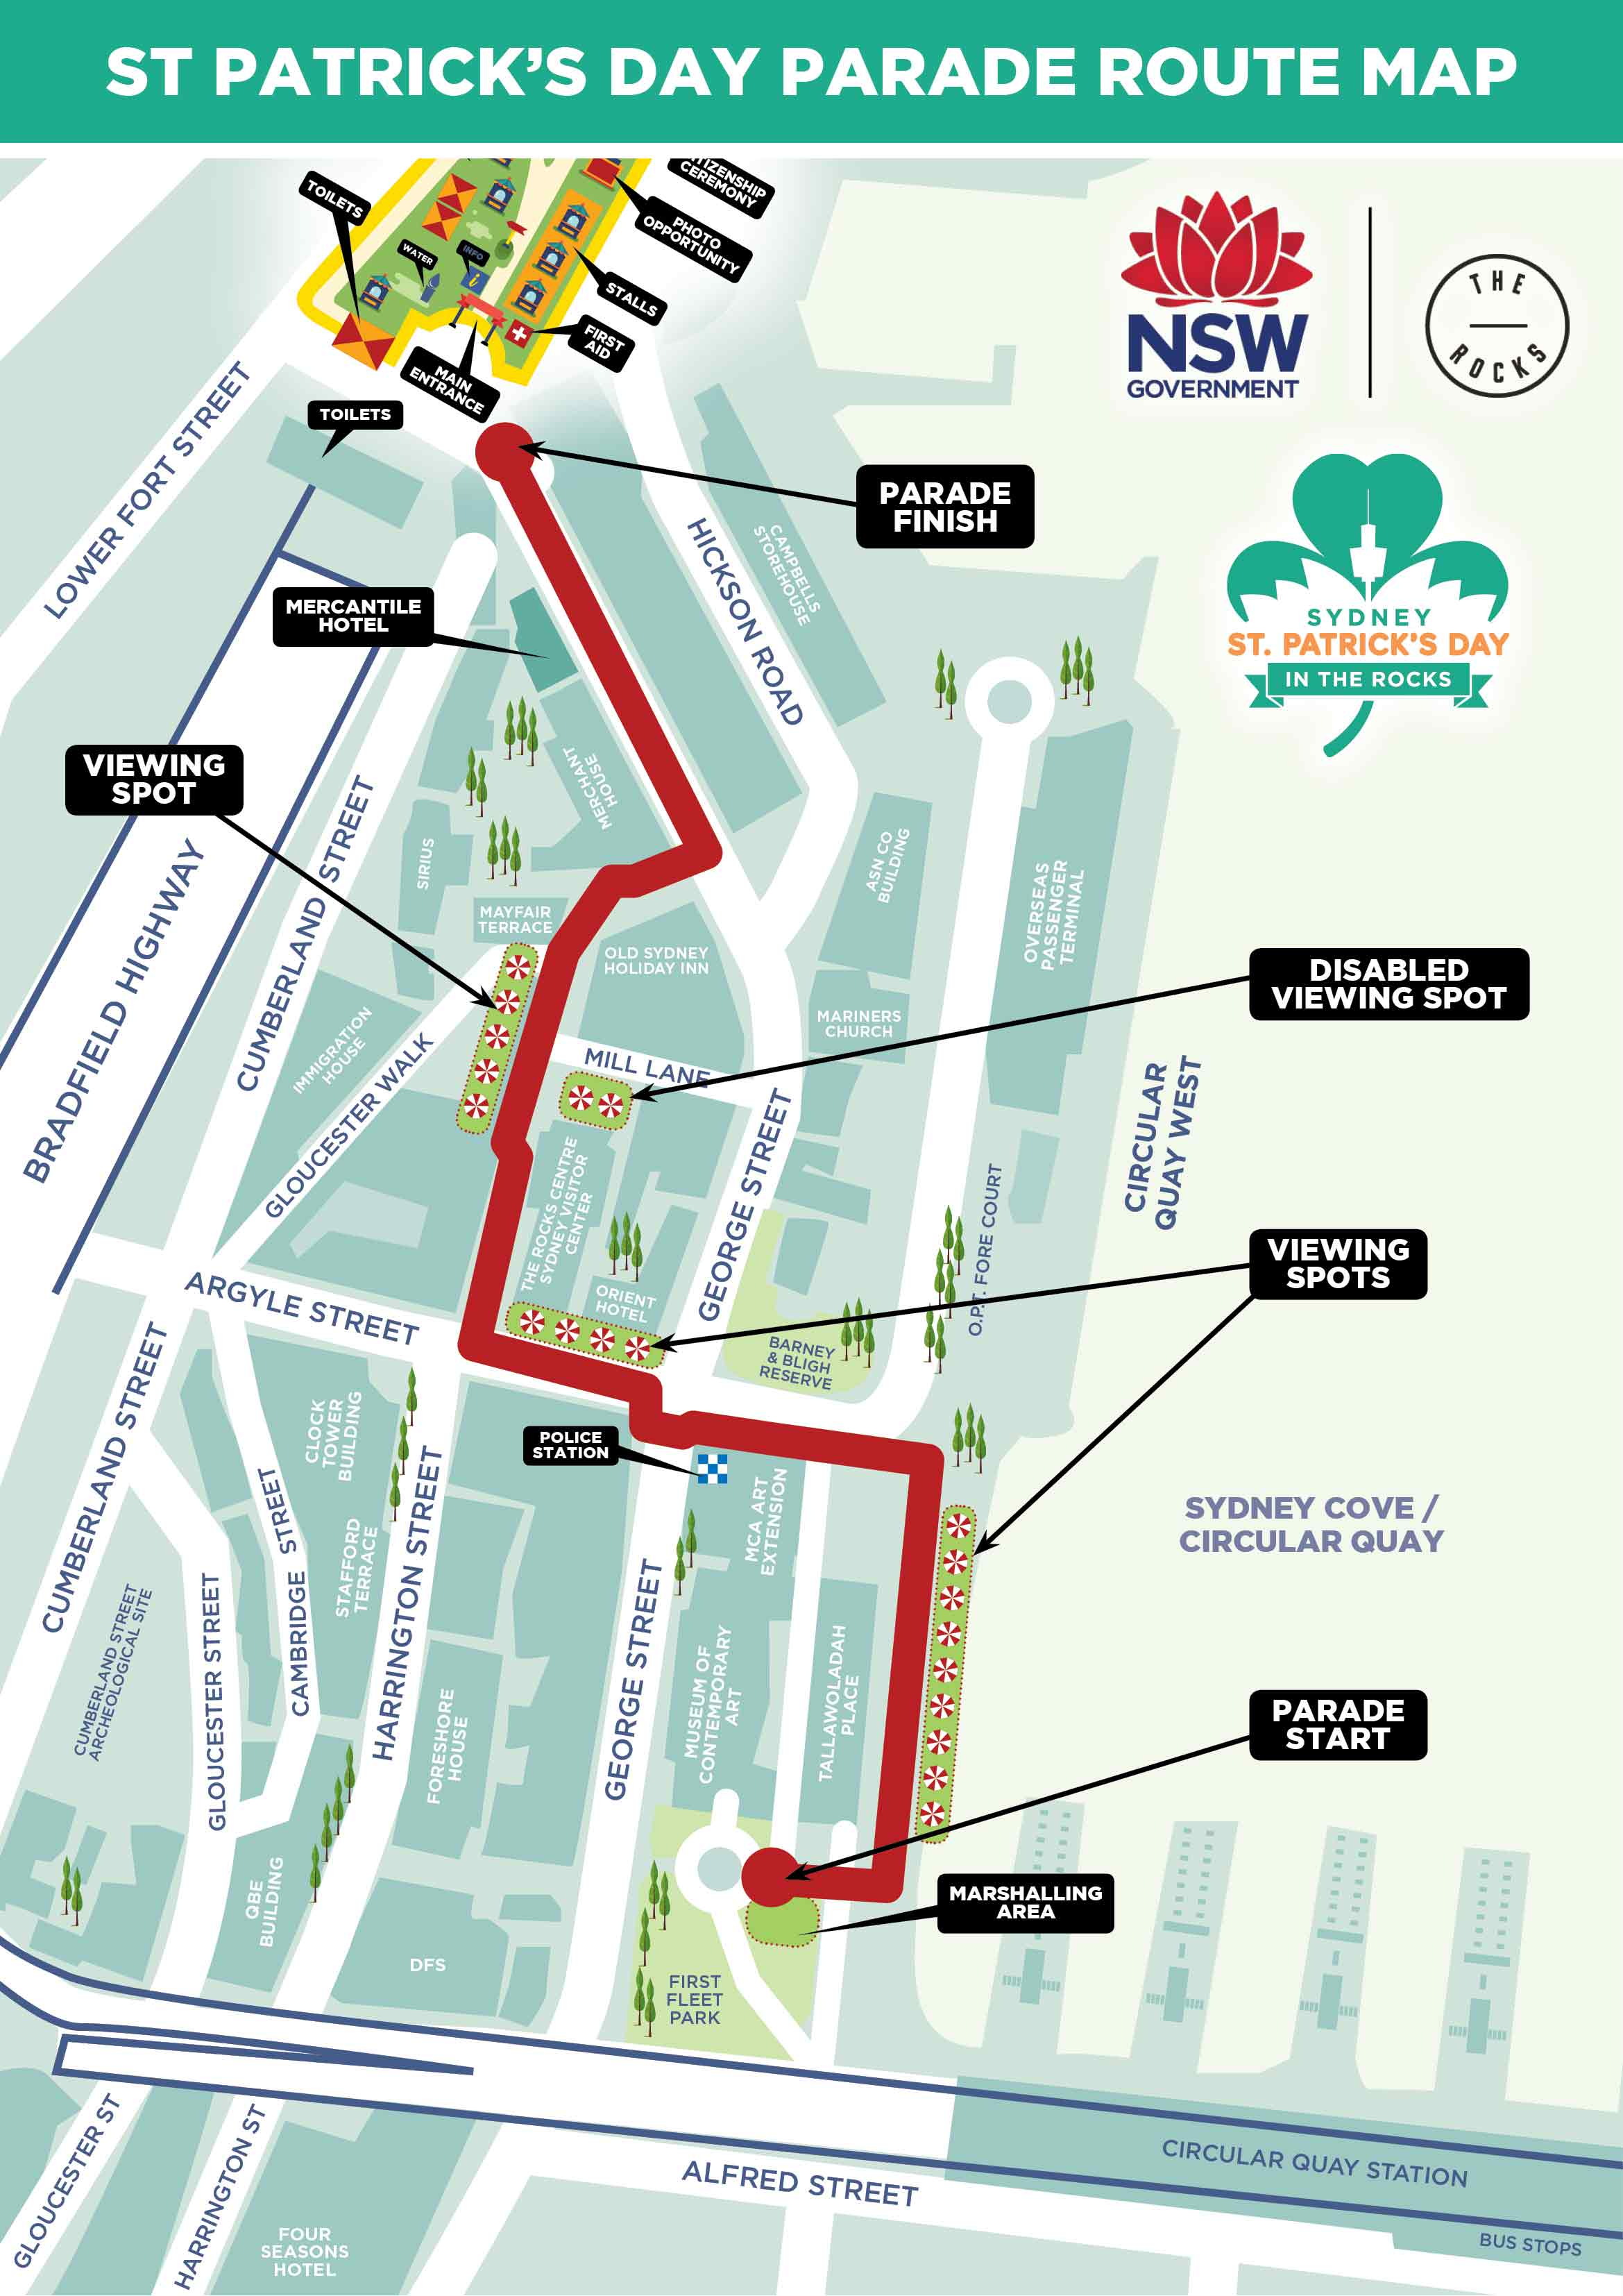 The map of the St Patricks Day Parade route for Sunday, March 17.